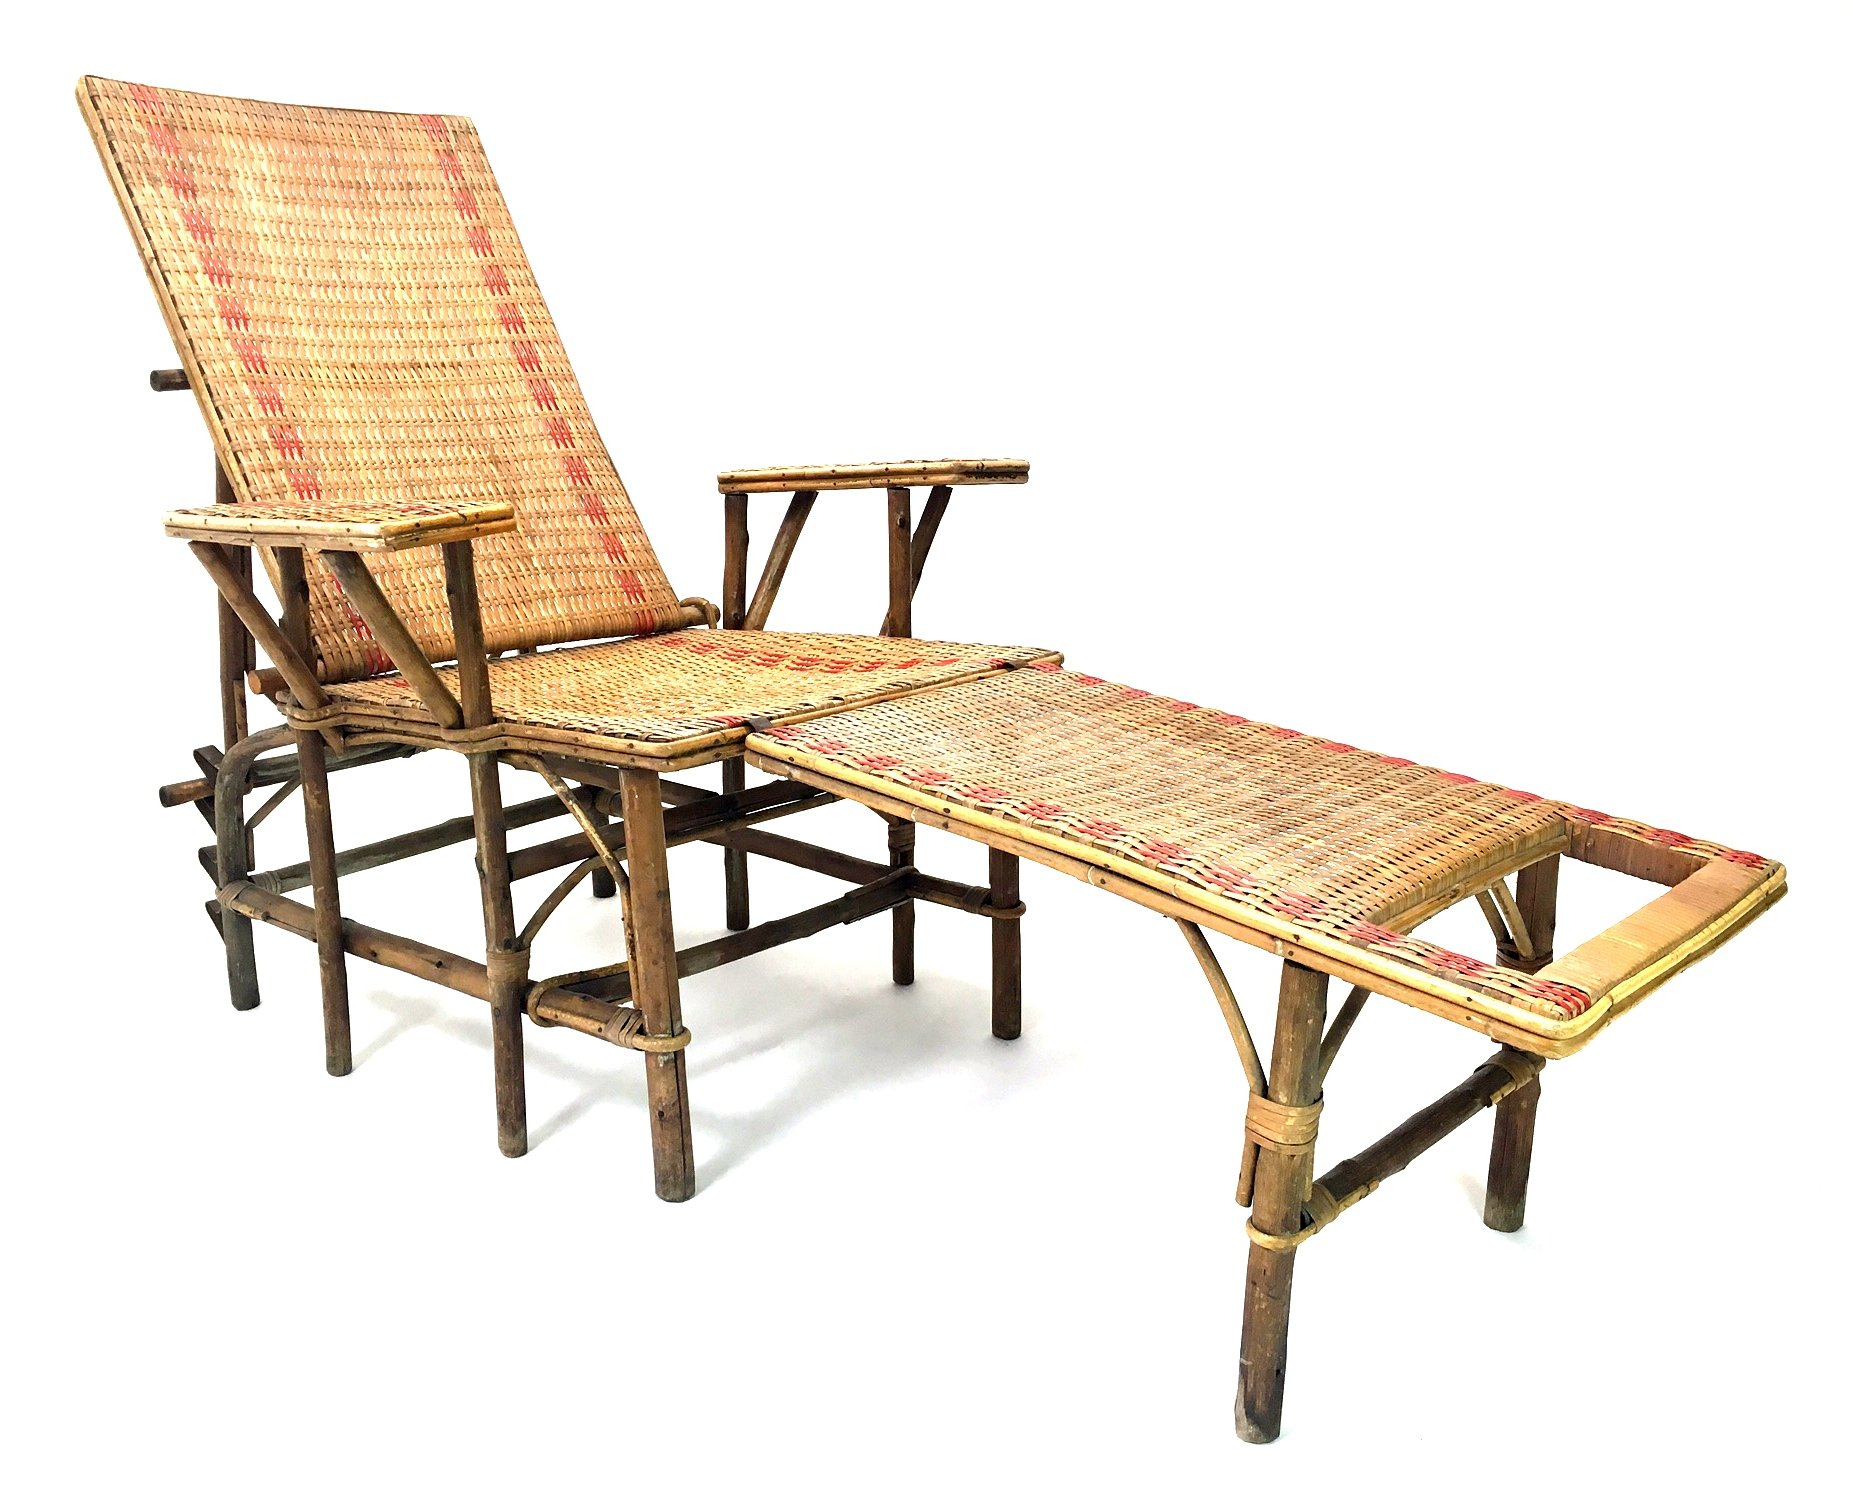 French wicker bamboo chaise longue with footrest 1920s for Bamboo chaise lounge